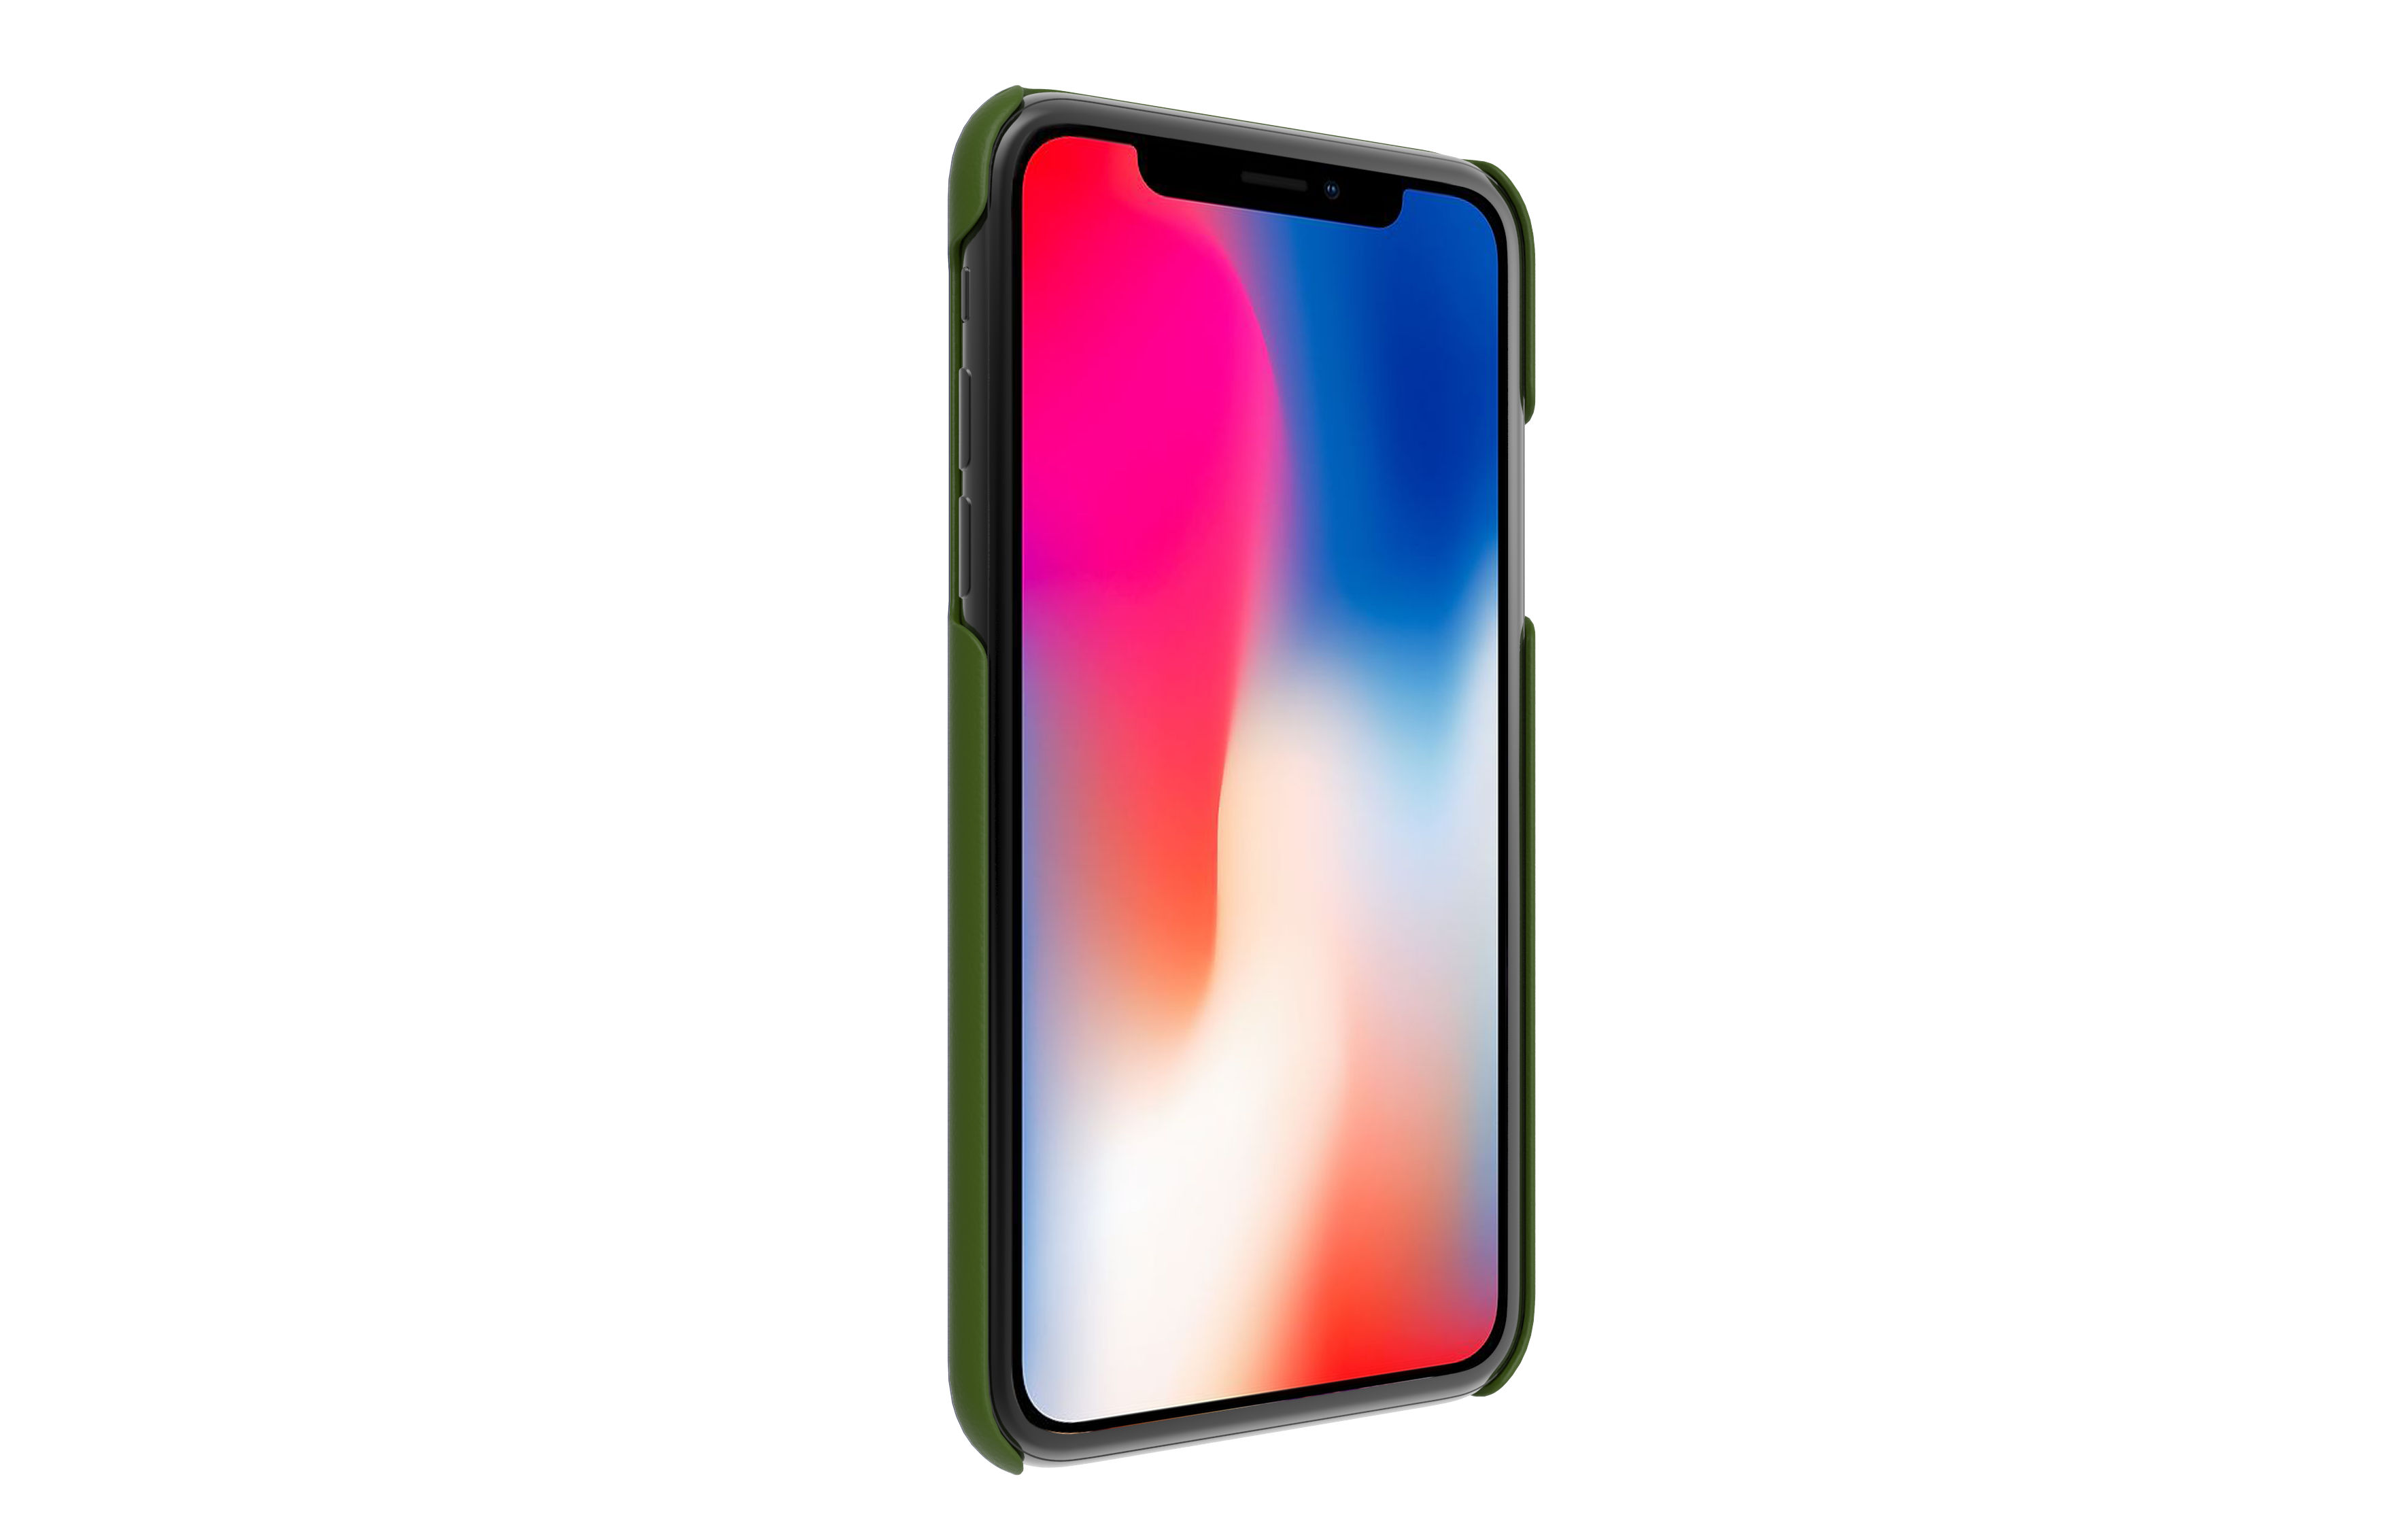 iphoneX green-4